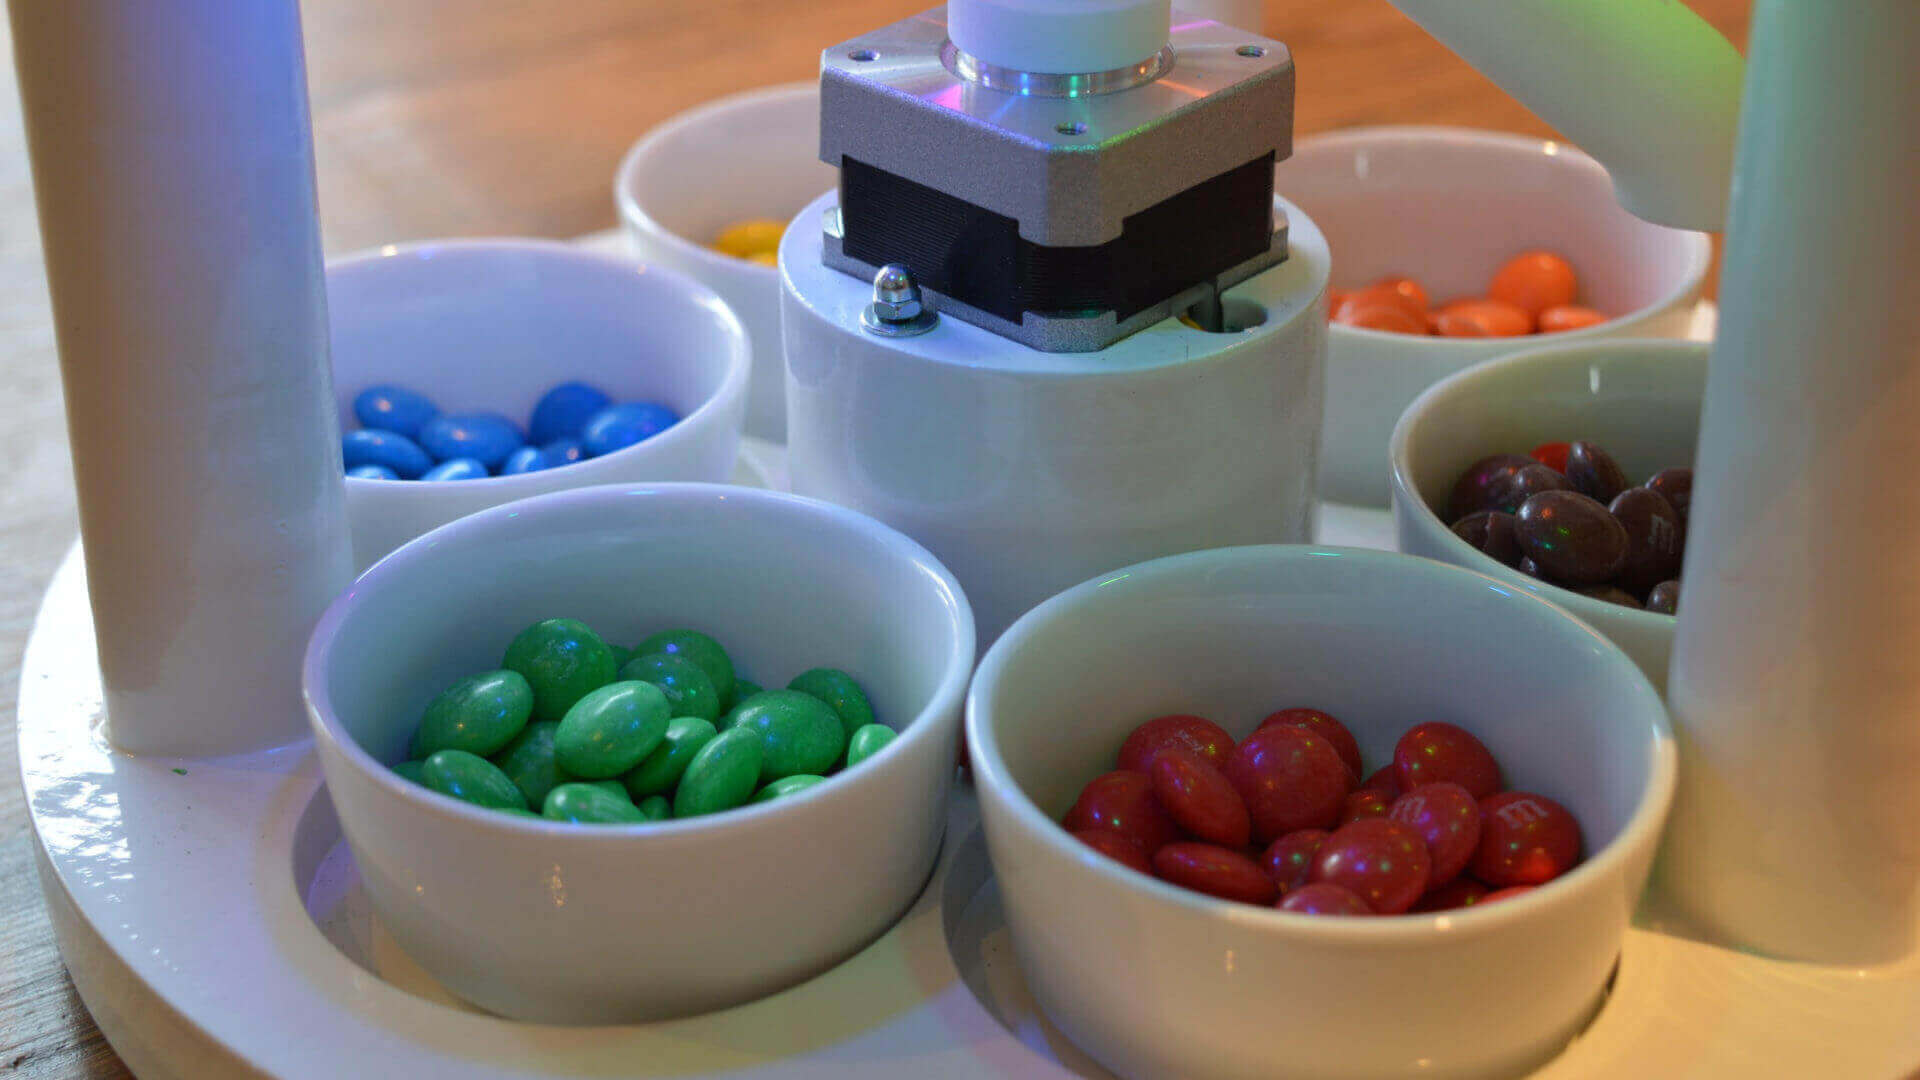 Candy Sorting Machine made with Arduino and 3D Printing | All3DP